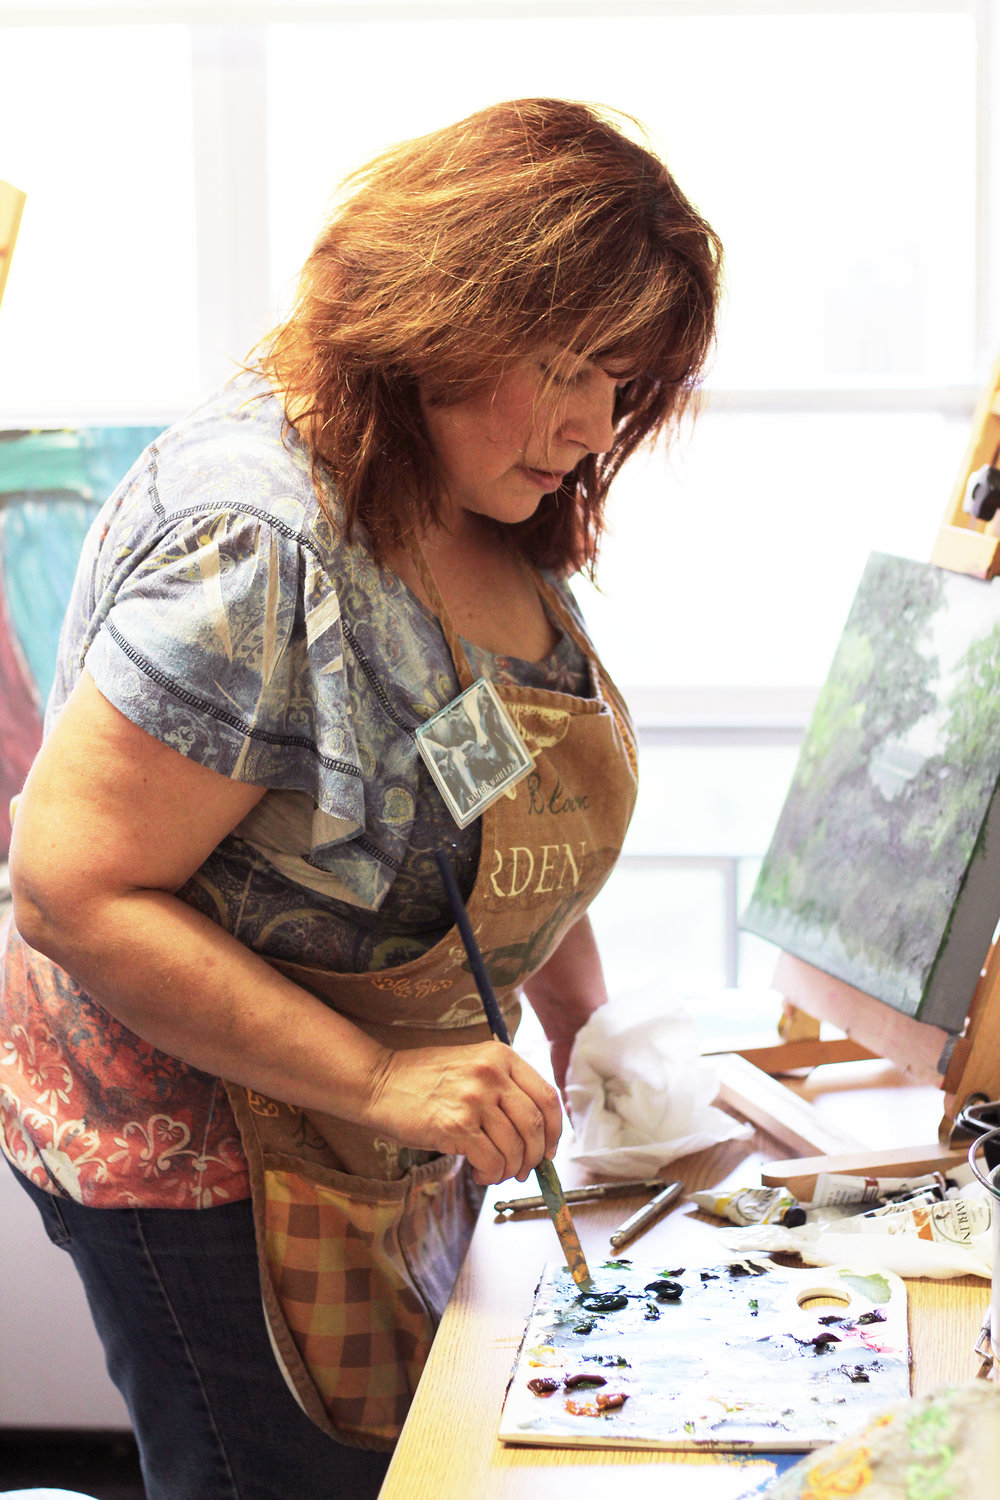 Kim Binaghi Lee has always maintained an admiration for the arts. She has partnered with Nassau Hall to help students with their artwork on Tuesdays from 6 p.m. to 8 p.m. in the Nassau Hall painting studio (Catherine White/editor-in-chief).